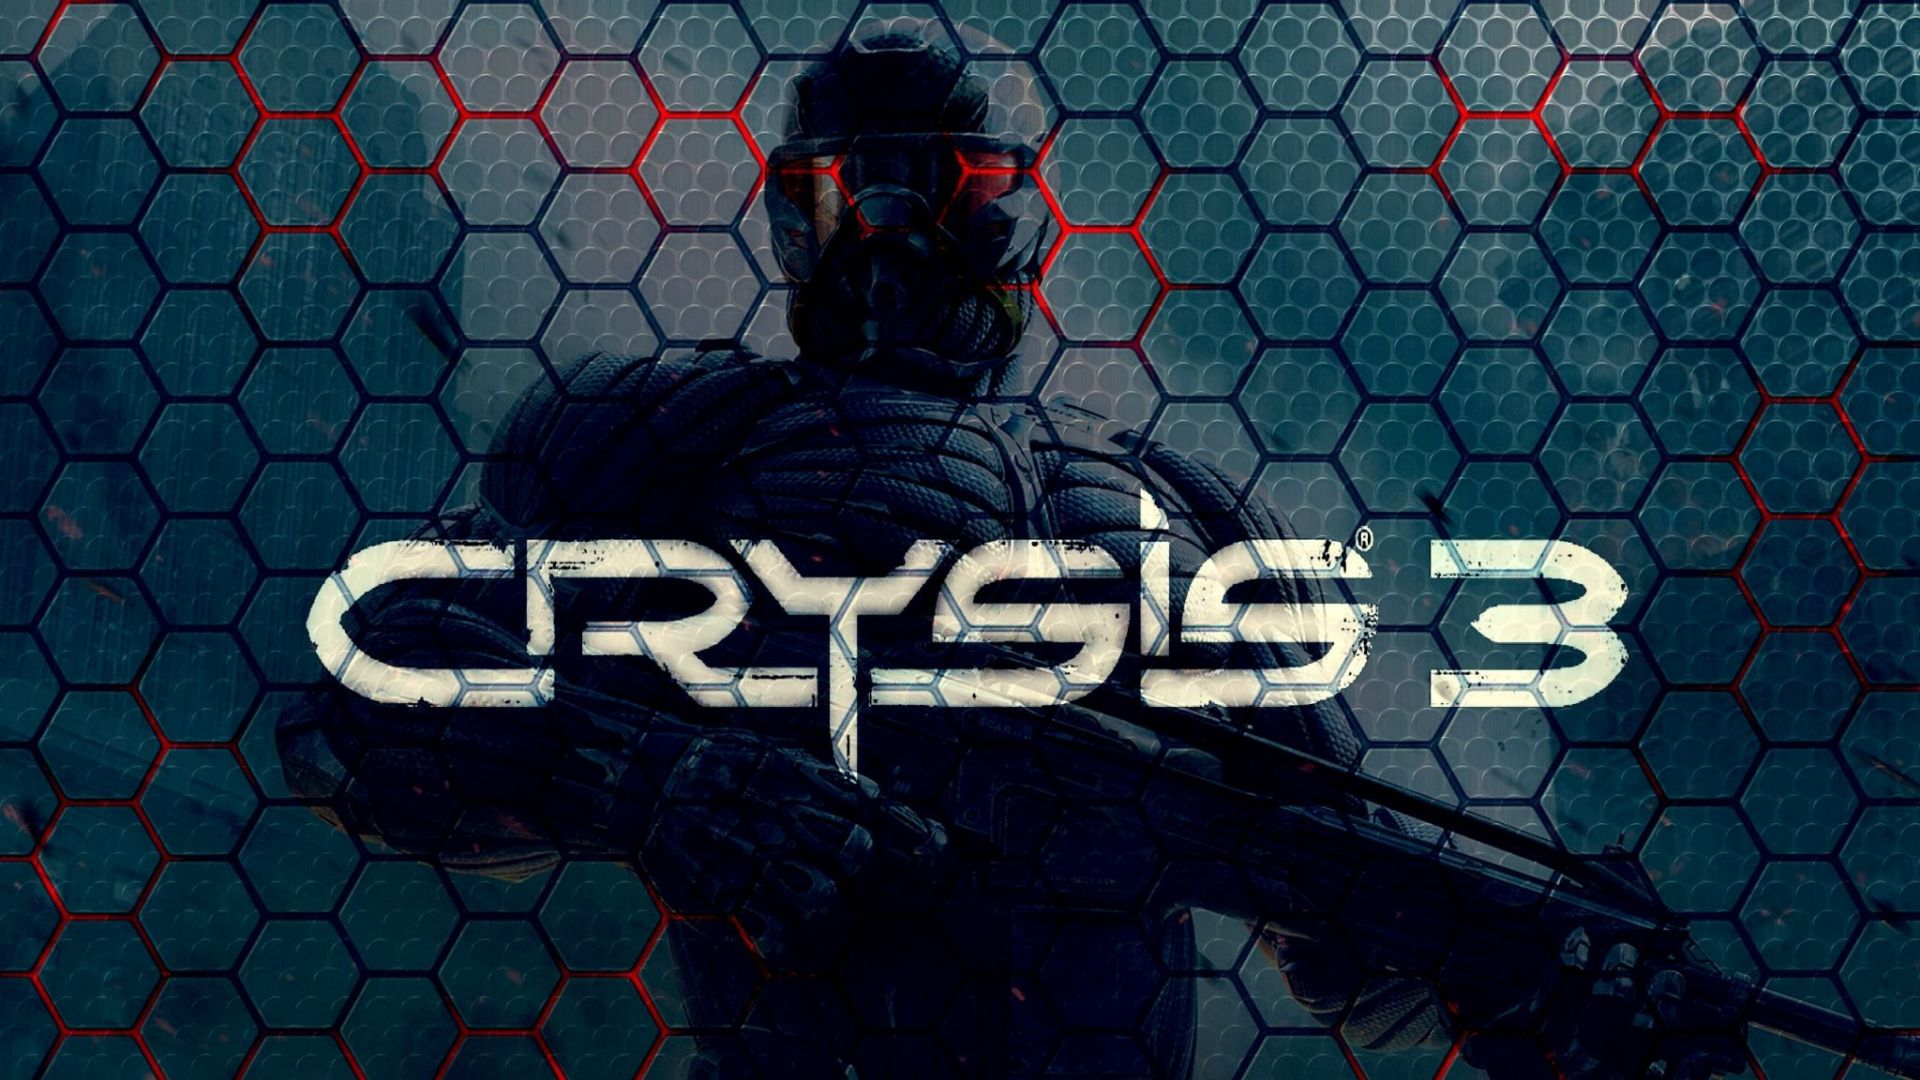 Crysis 3 2013 Video Game 4k Hd Desktop Wallpaper For 4k: Crysis 3 Hd Wallpaper - HD Desktop Wallpapers